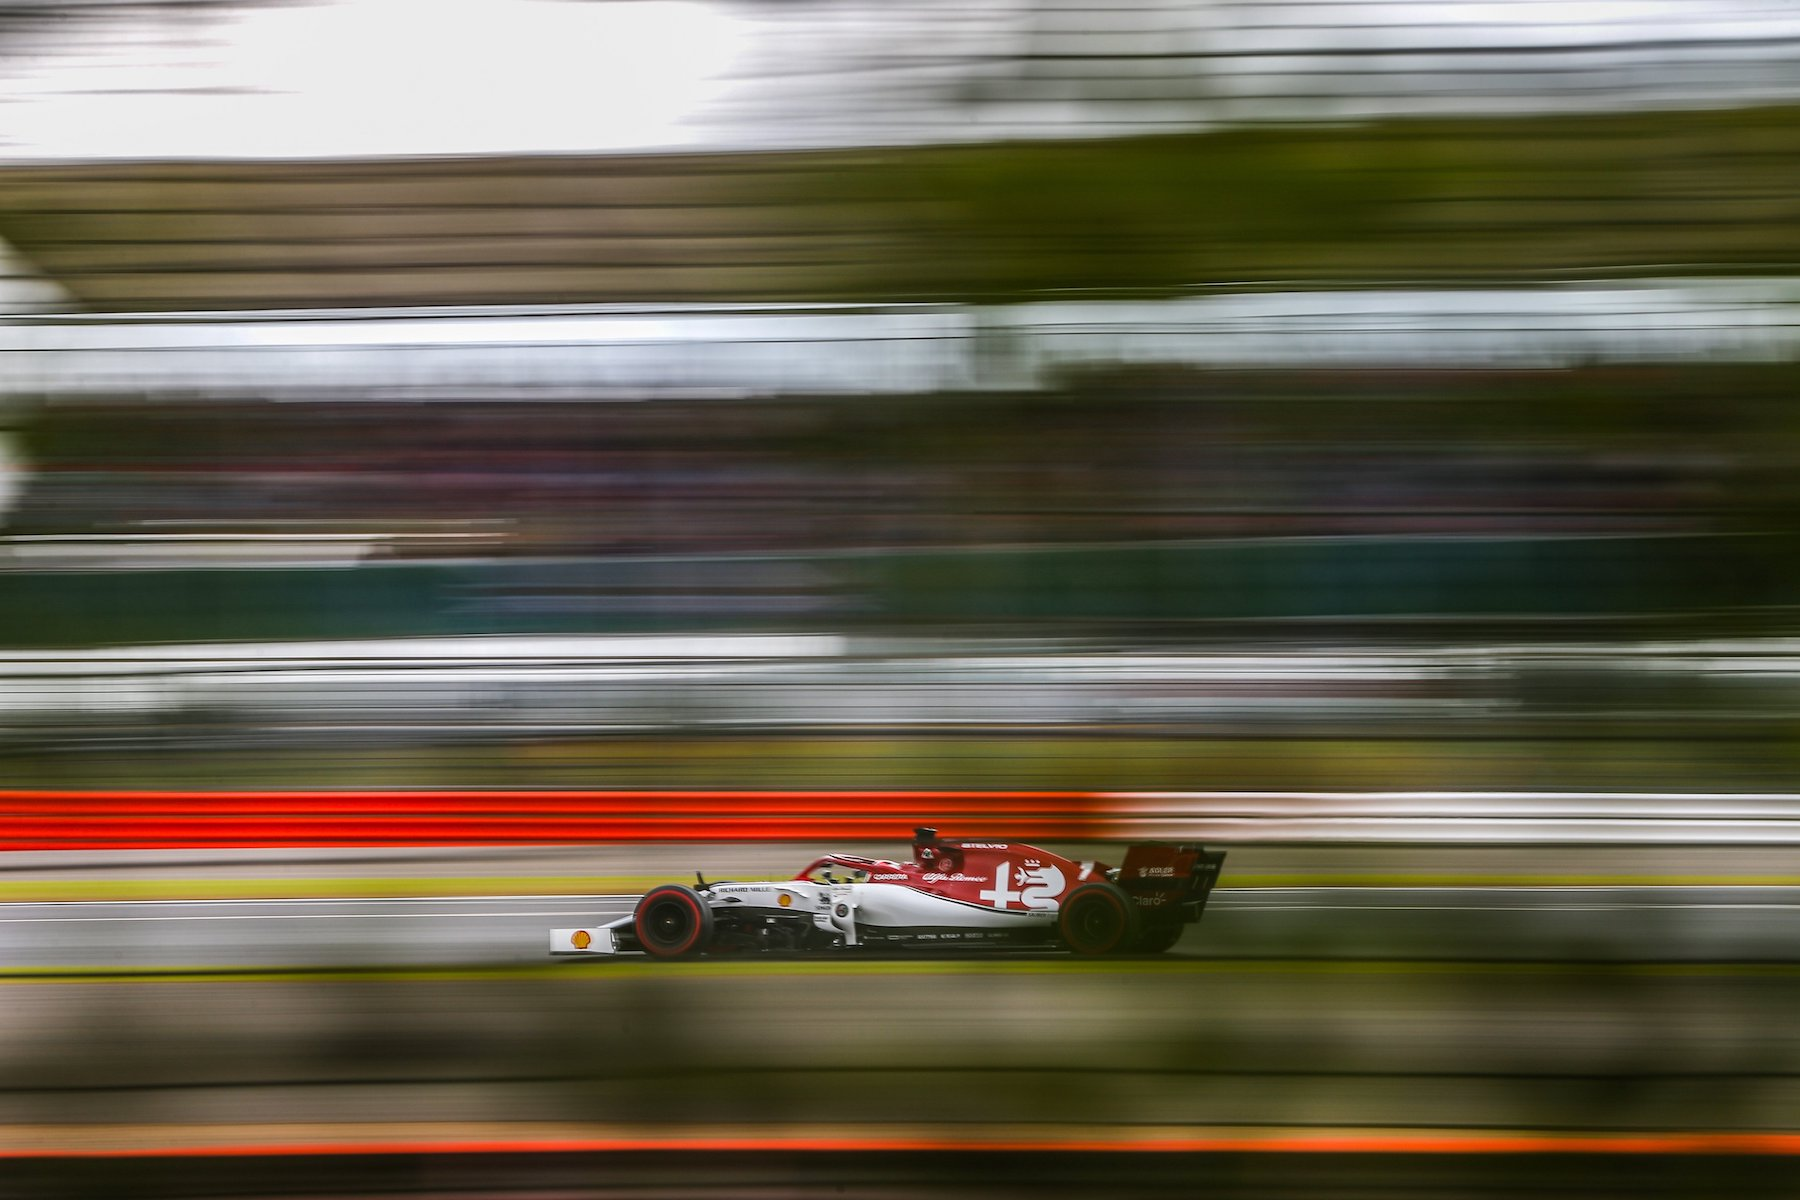 3 2019 British Grand Prix Saturday 33.jpg